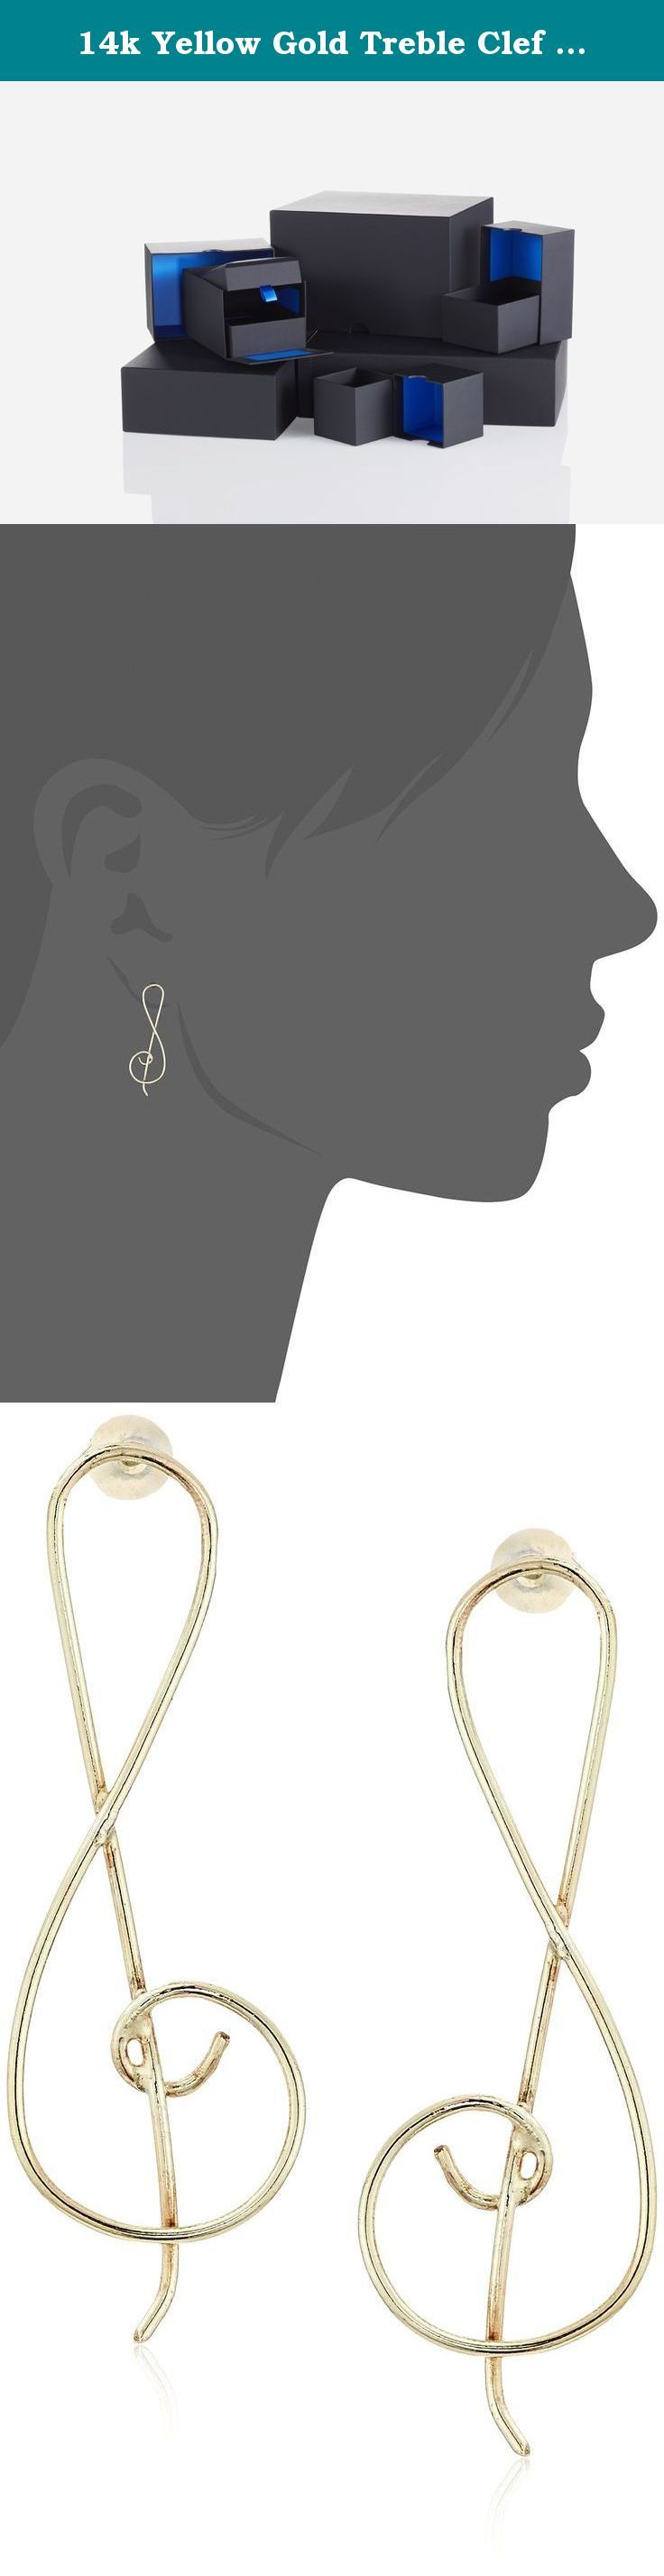 14k Yellow Gold Treble Clef Earrings. Made in Indonesia.